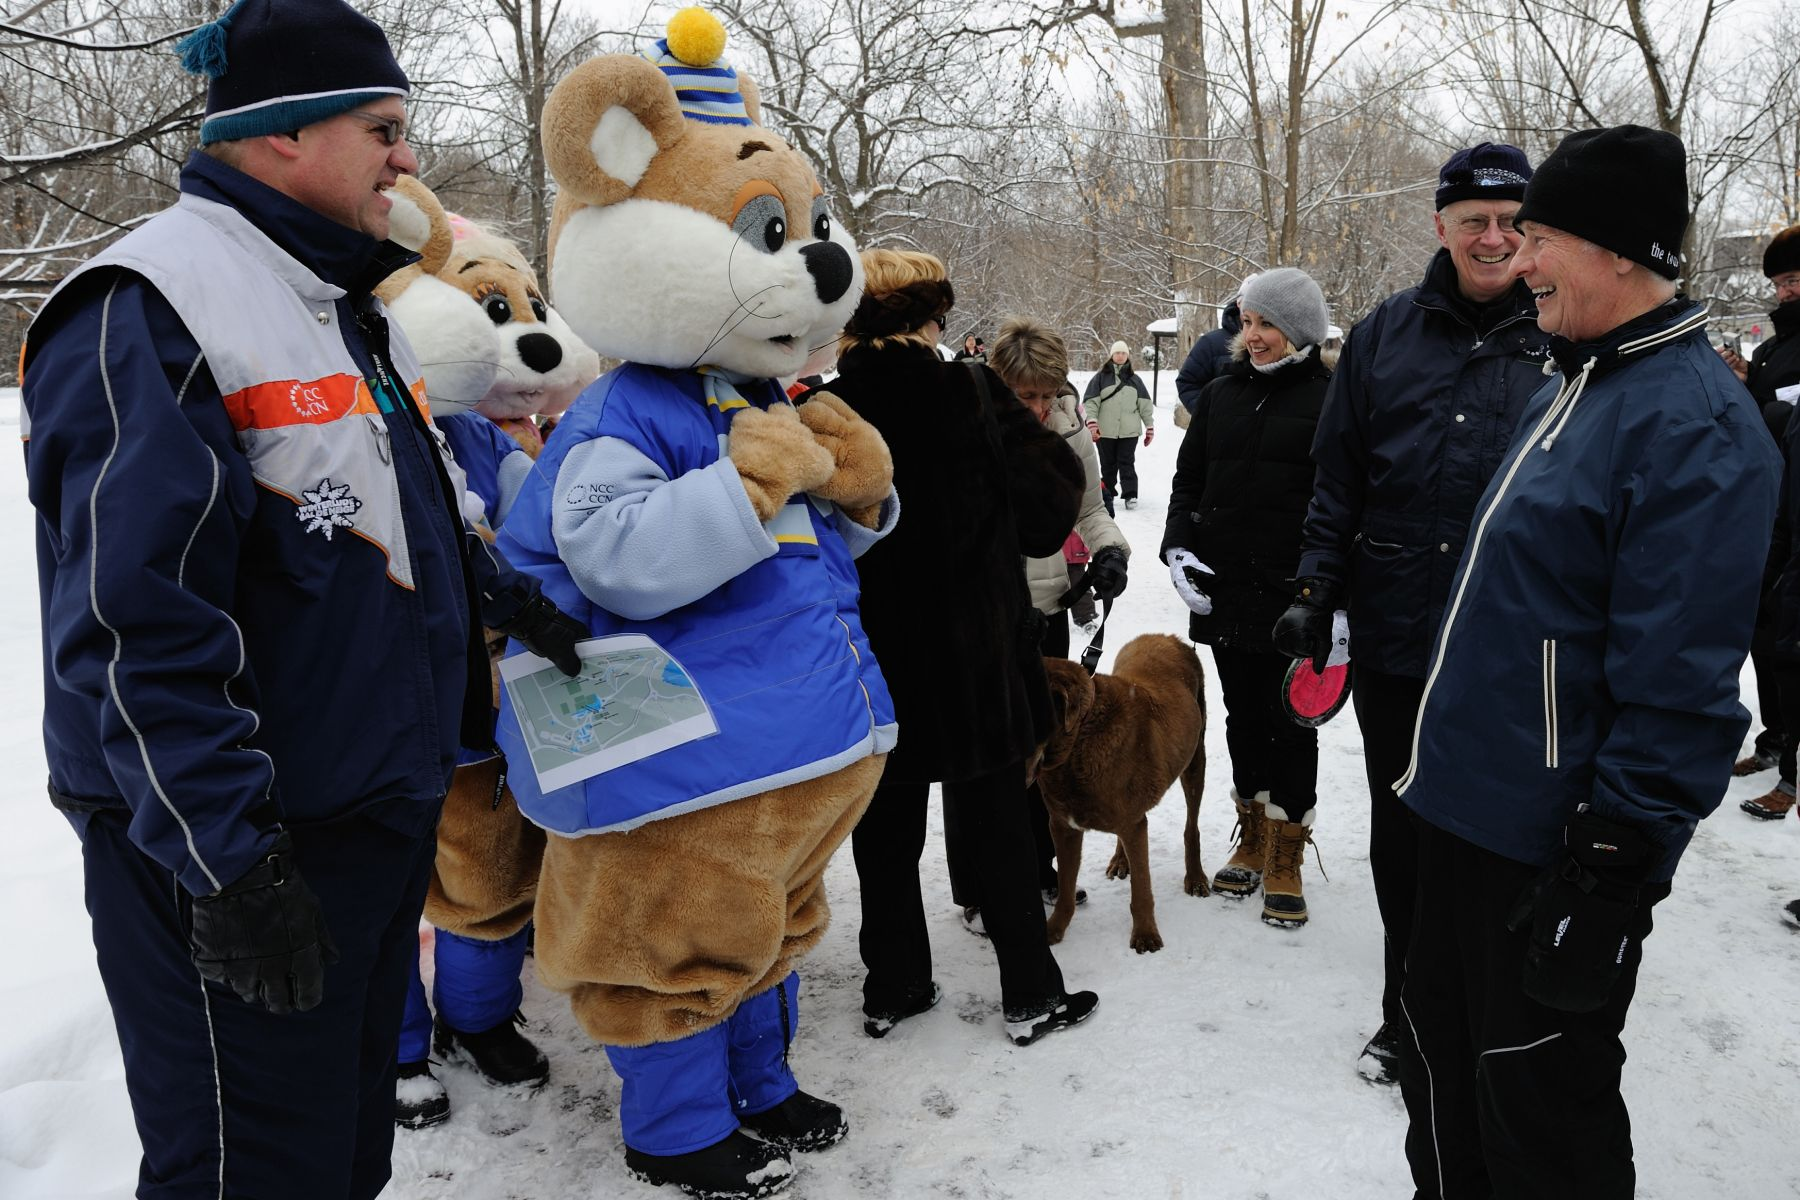 The Governor General met with the Ice Hog family, Winterlude's official mascots, who came to visit Rideau Hall.